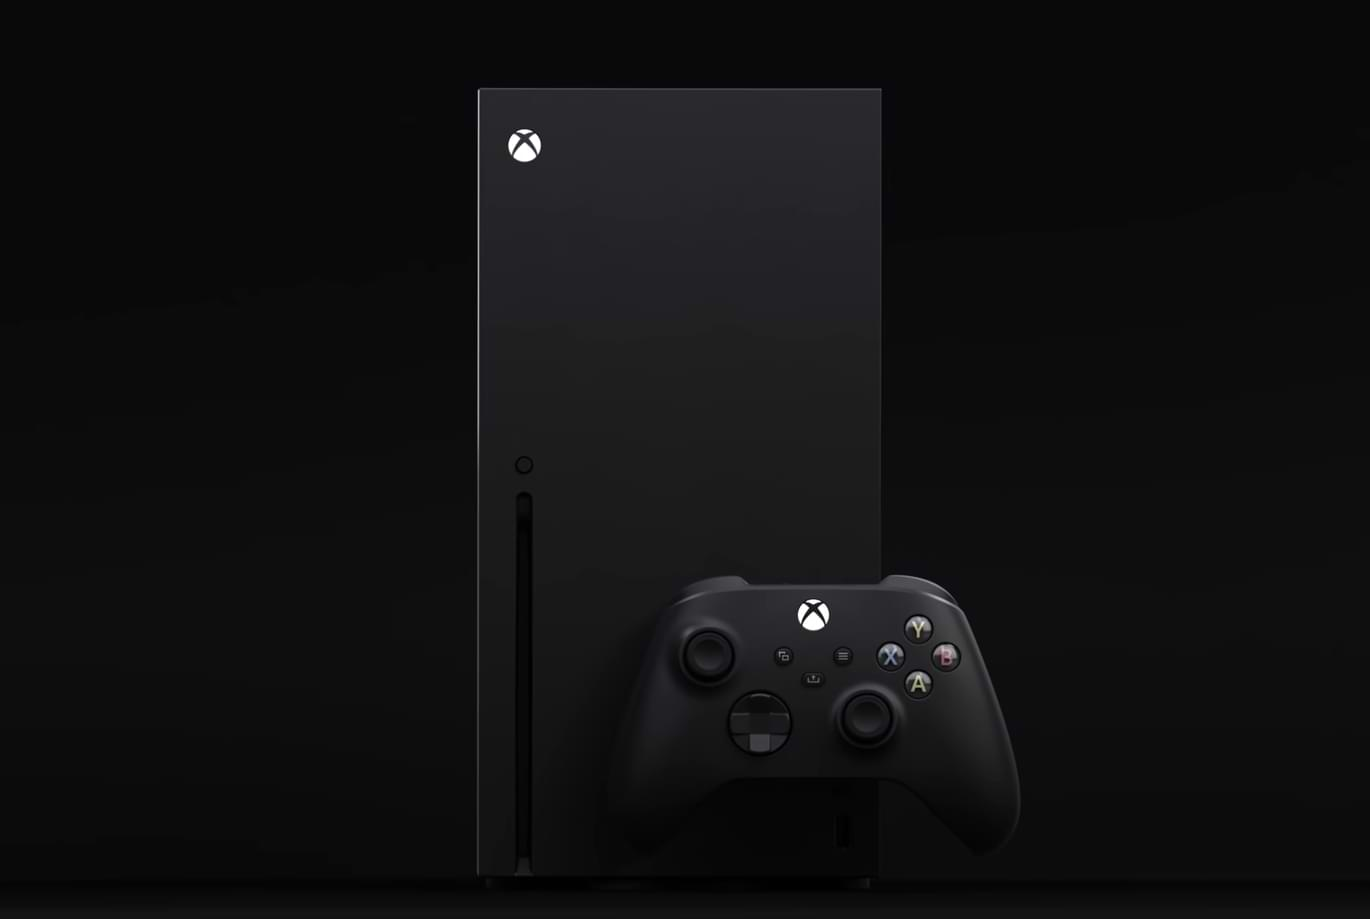 Xbox Series X Can Play Almost Any Xbox One X Game at 4K 60FPS